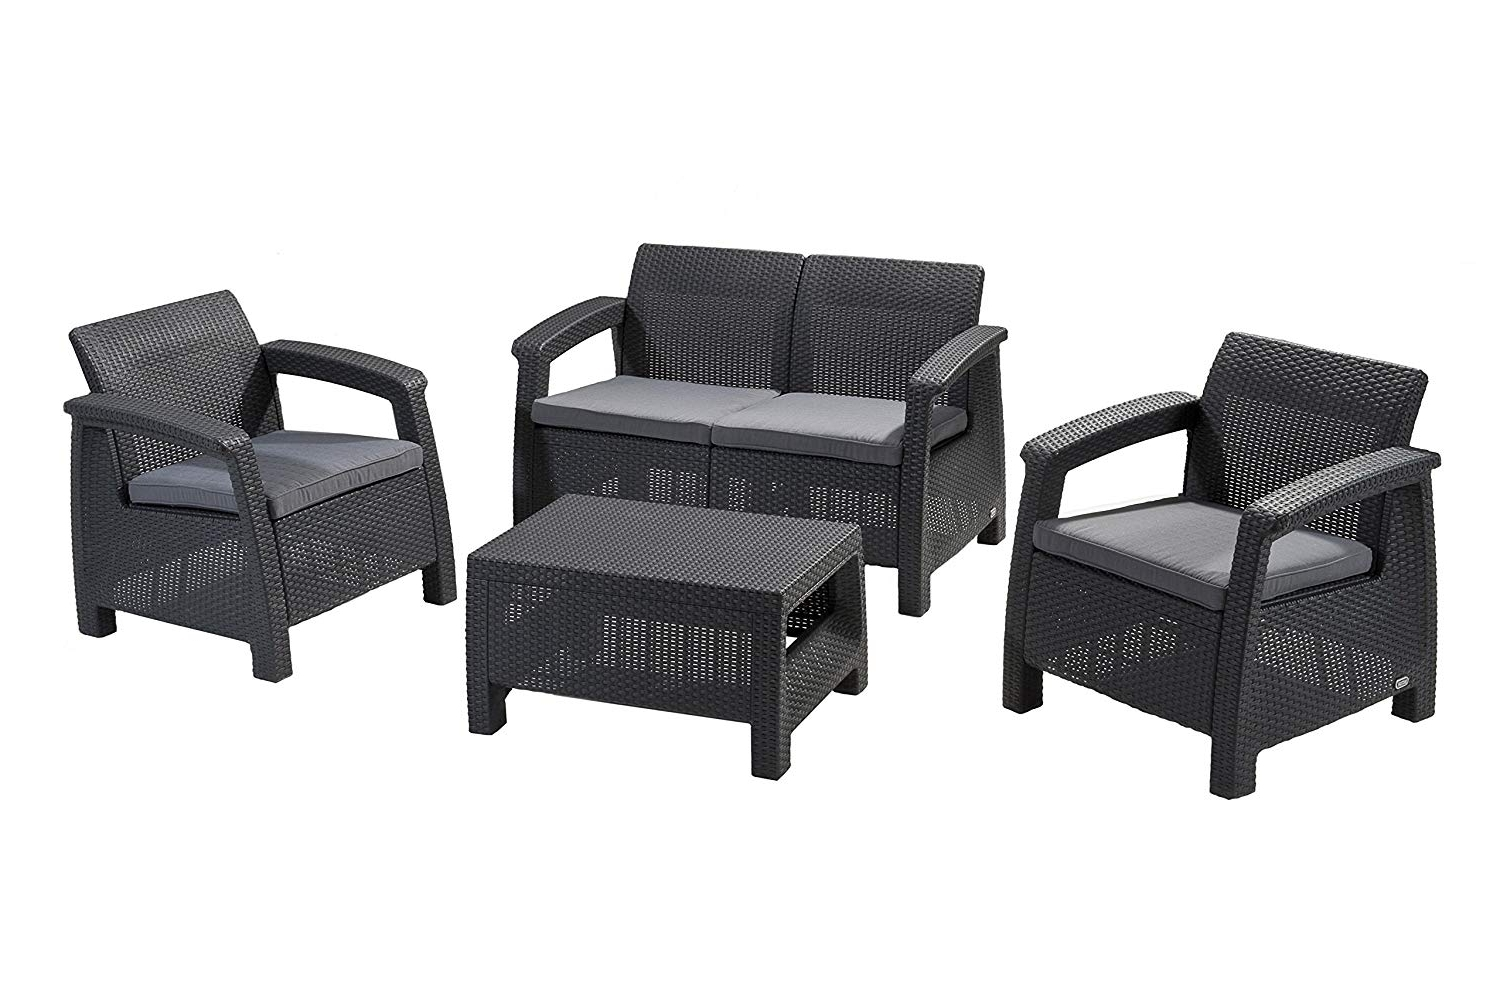 Famous Amazon: Keter Corfu 4 Piece Set All Weather Outdoor Patio Garden Regarding Garten Storm Chairs With Espresso Finish Set Of (View 2 of 20)